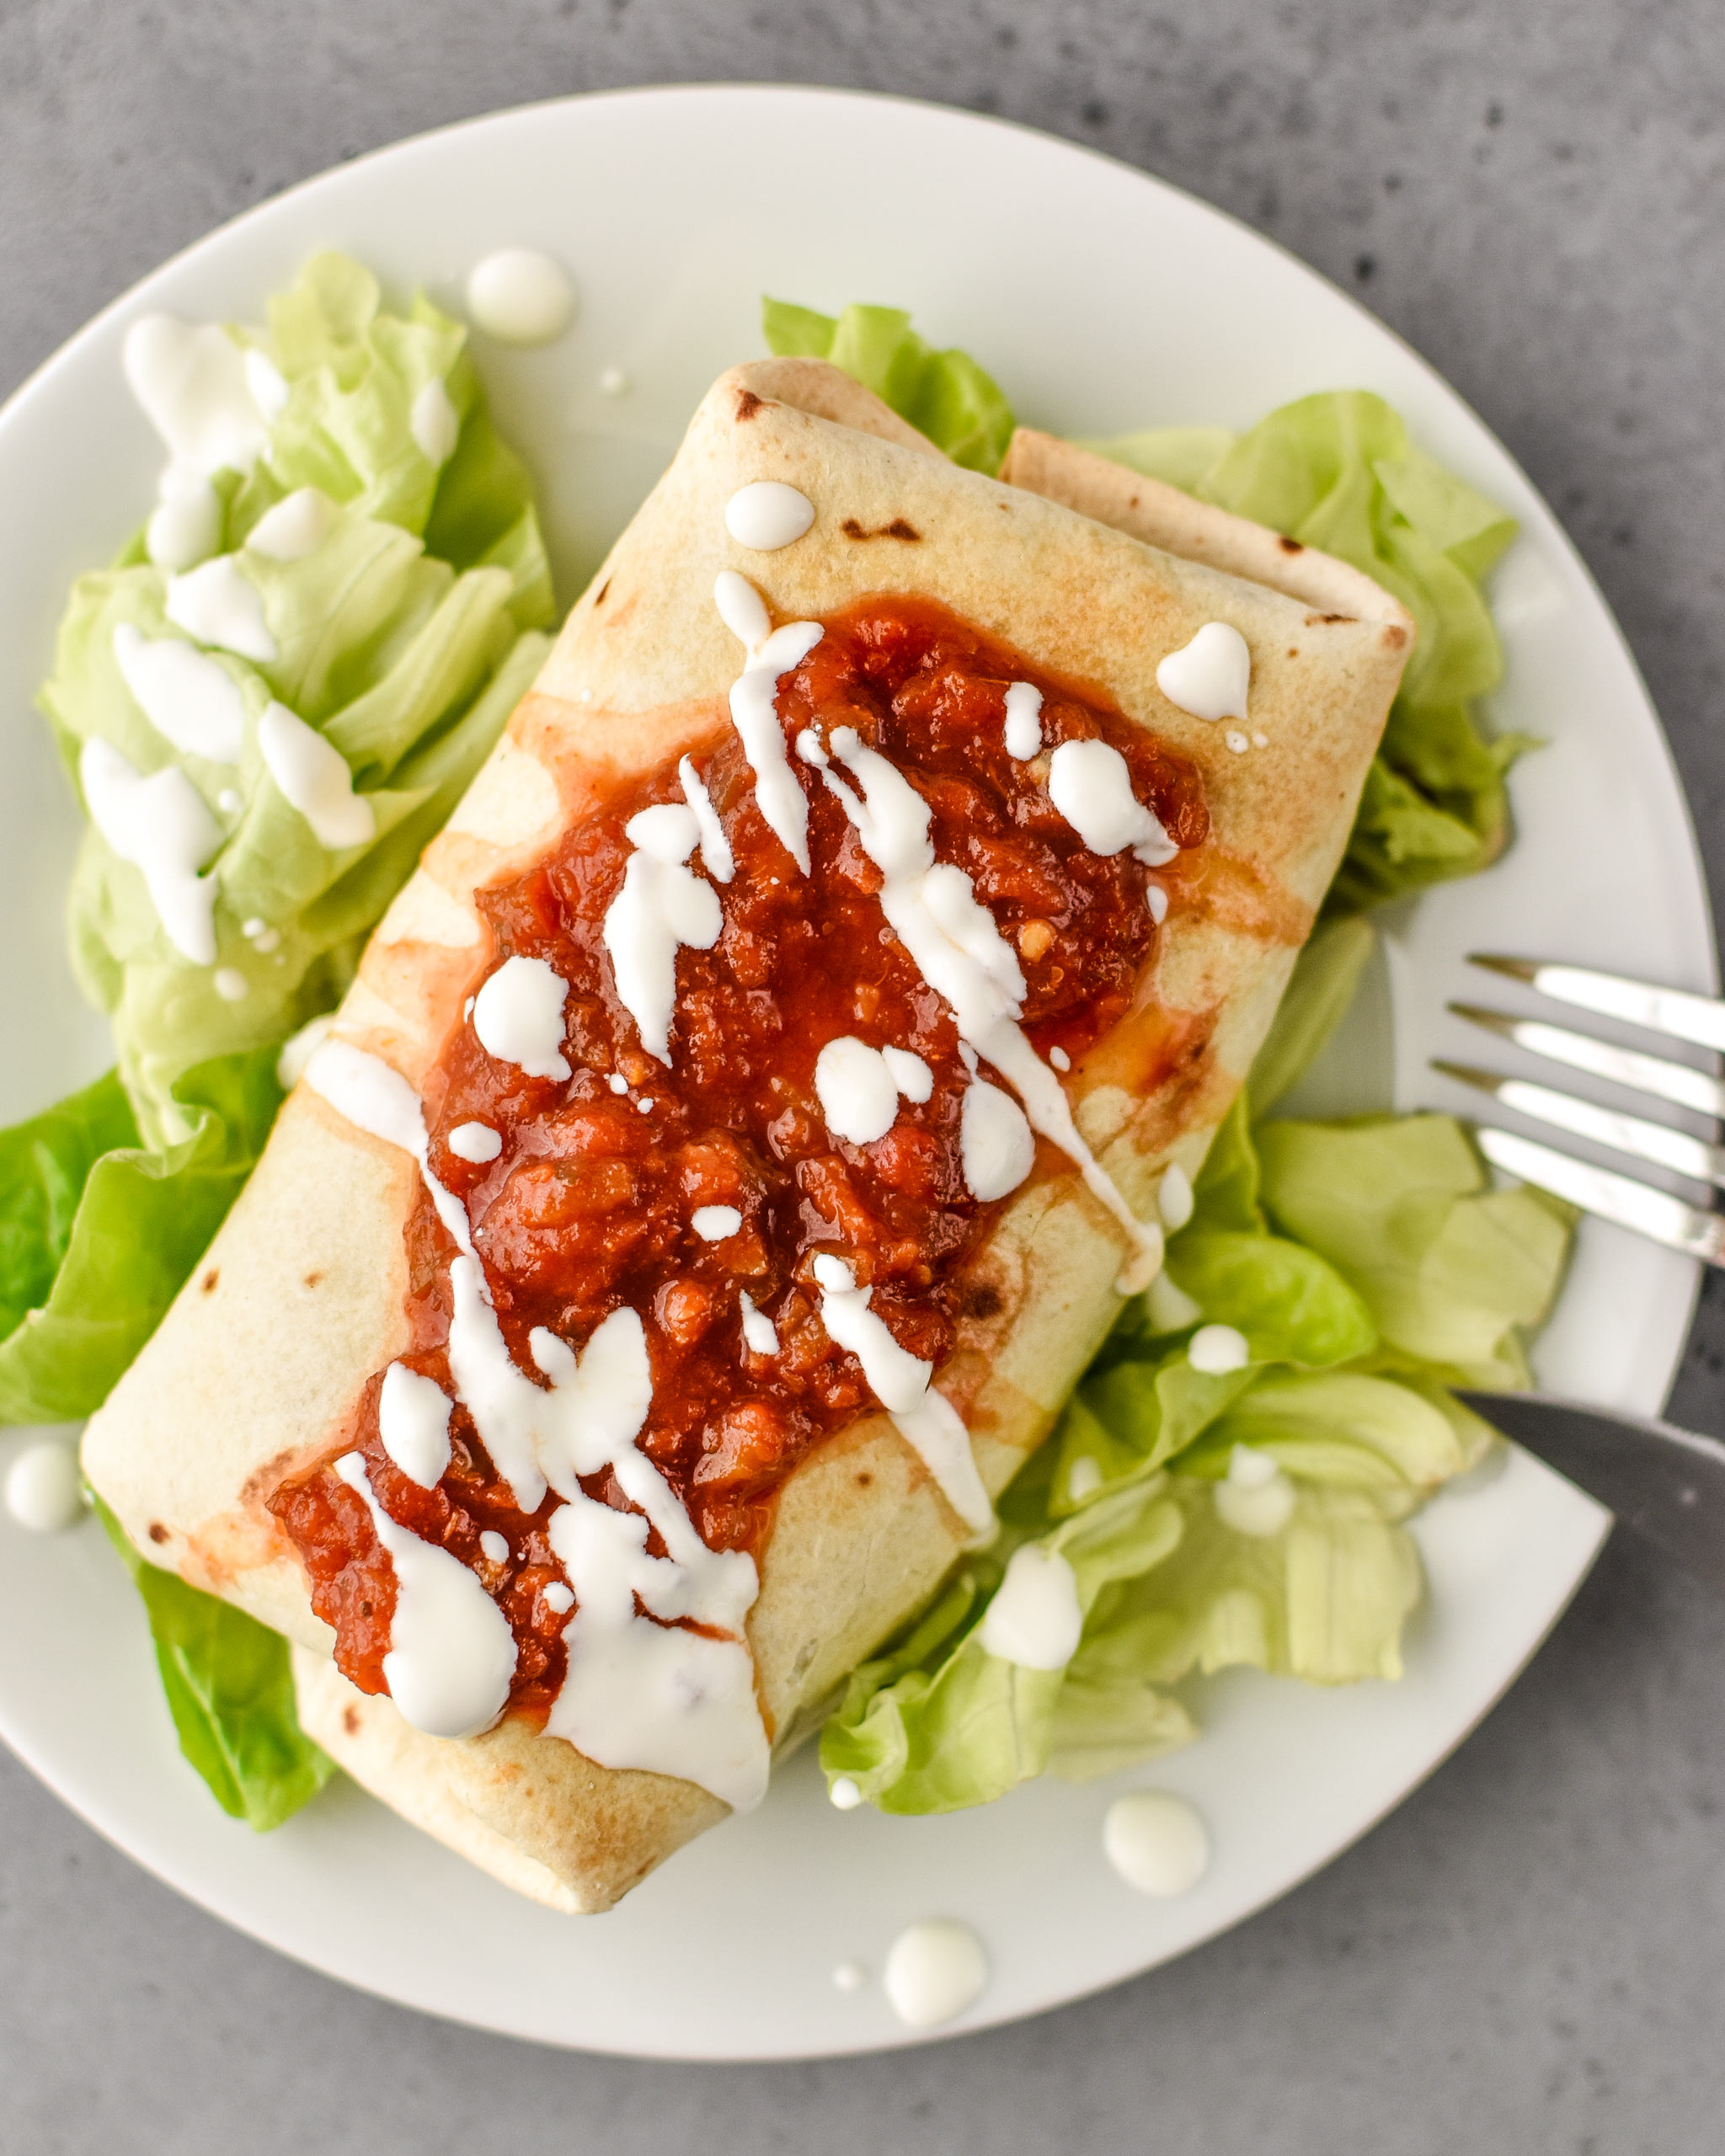 How to make chimichangas in an air fryer - chimichanga with salsa and lettuce